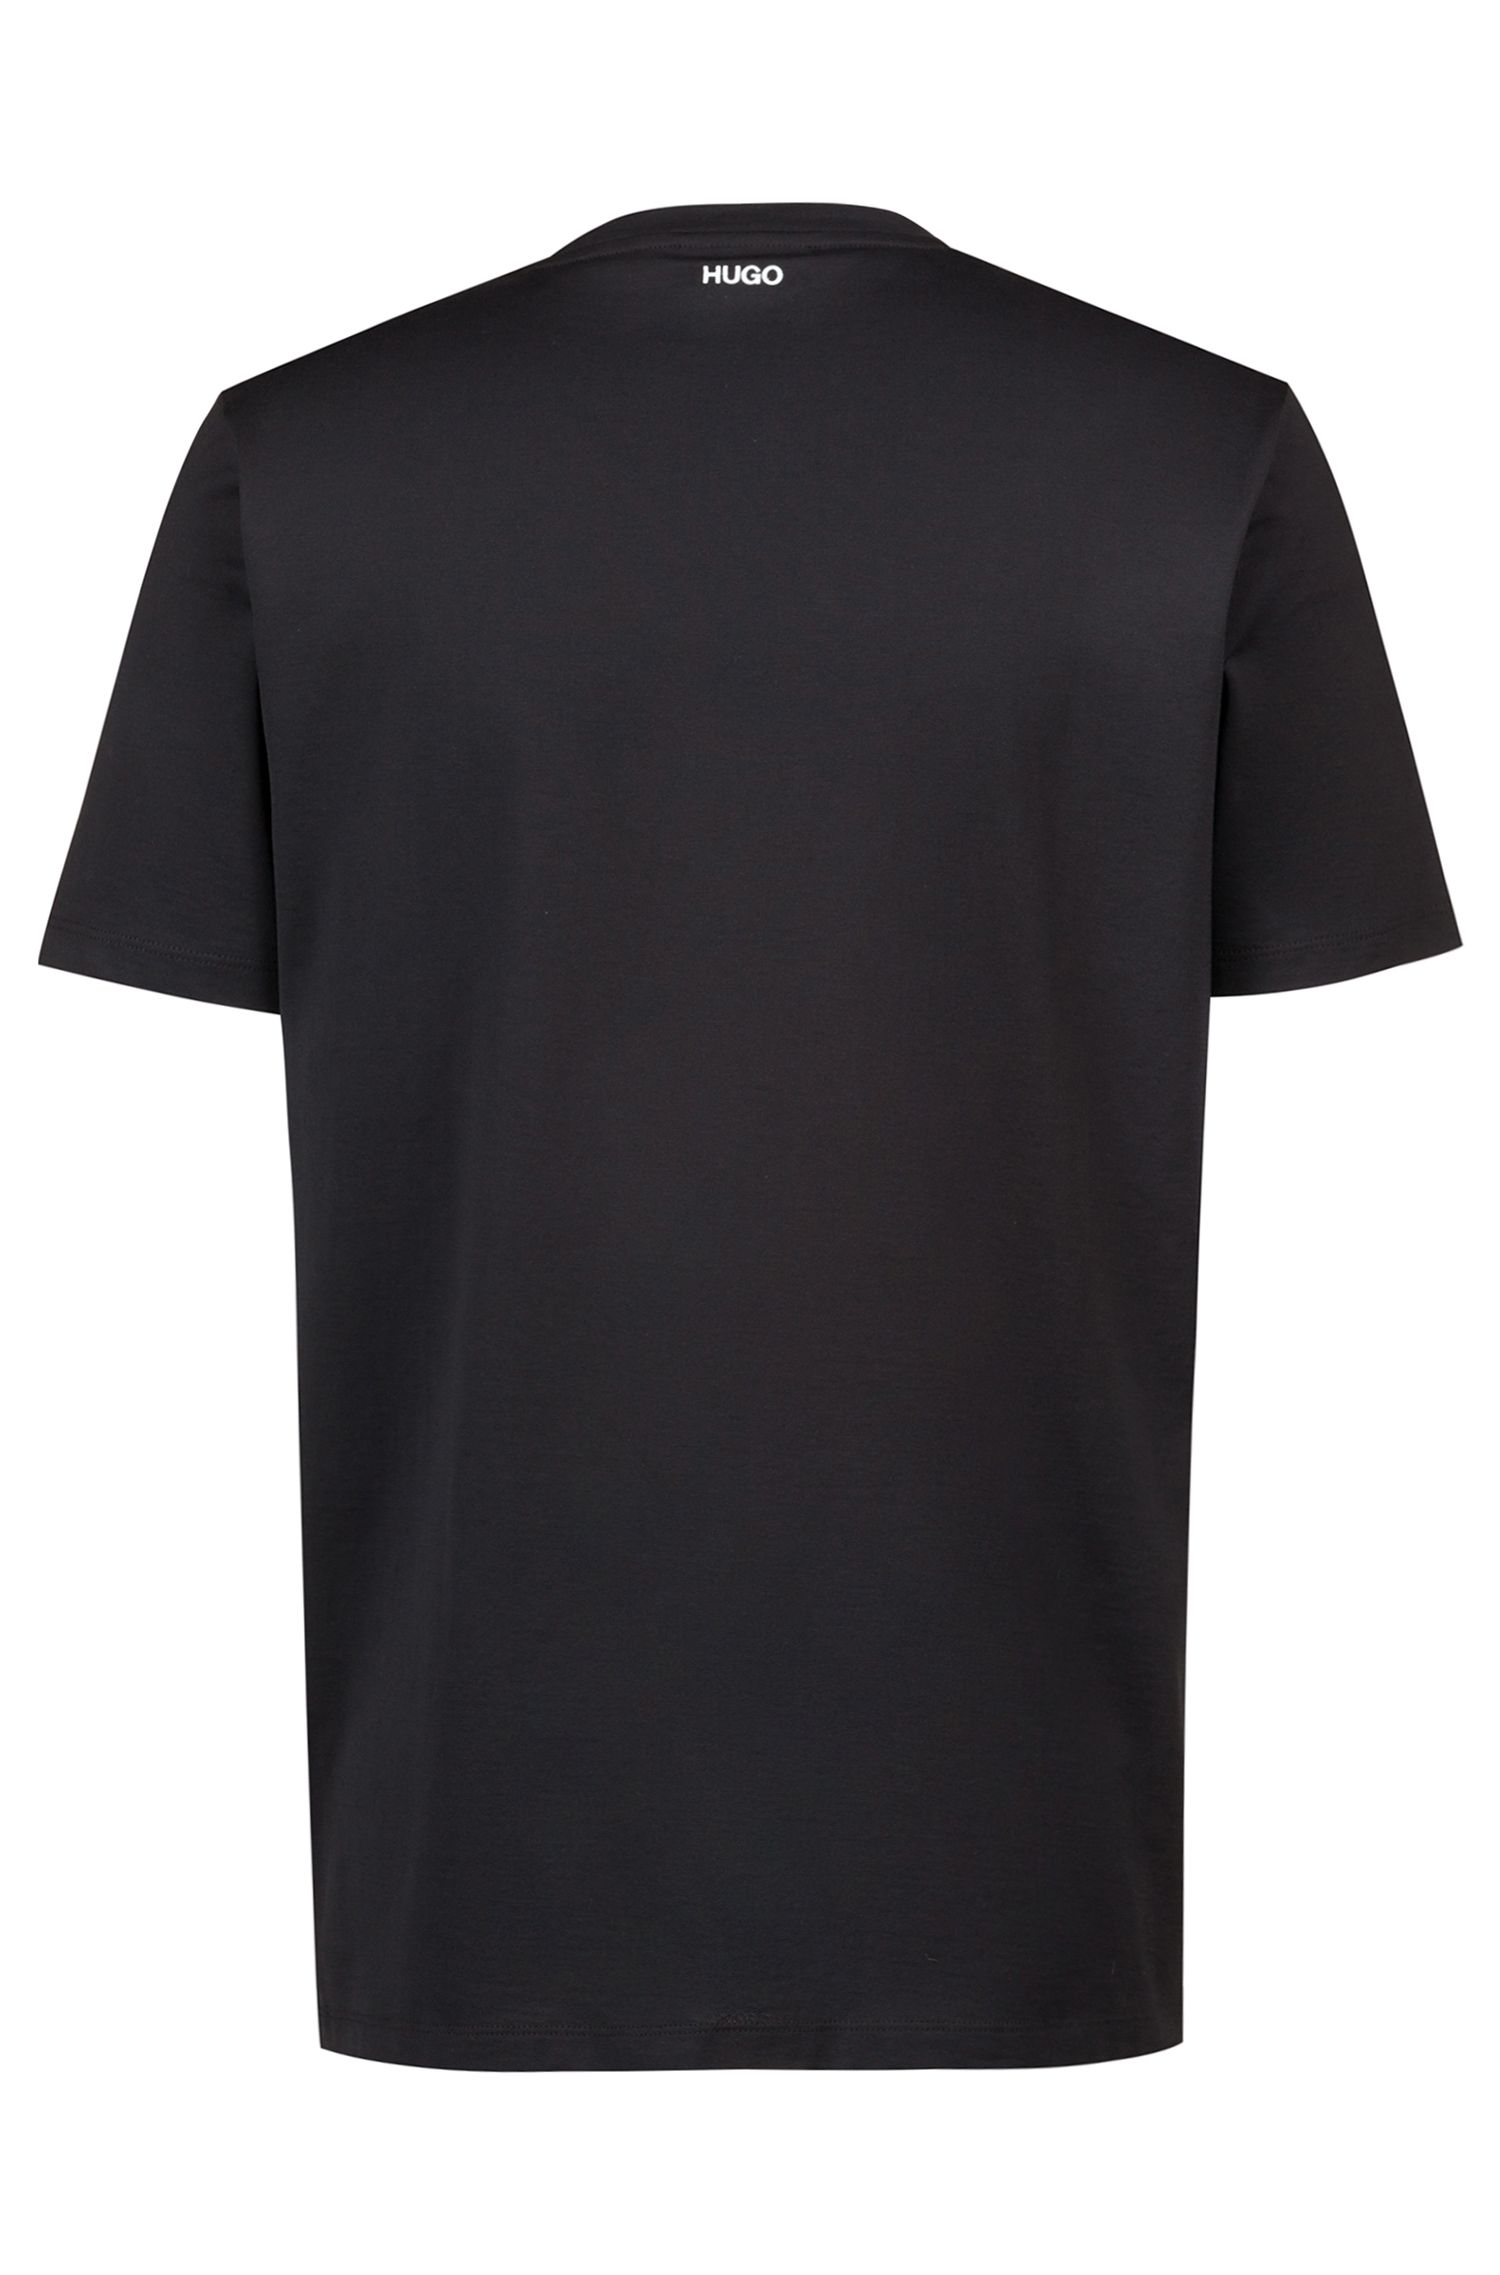 Regular-fit T-shirt in cotton with placement foil print, Black